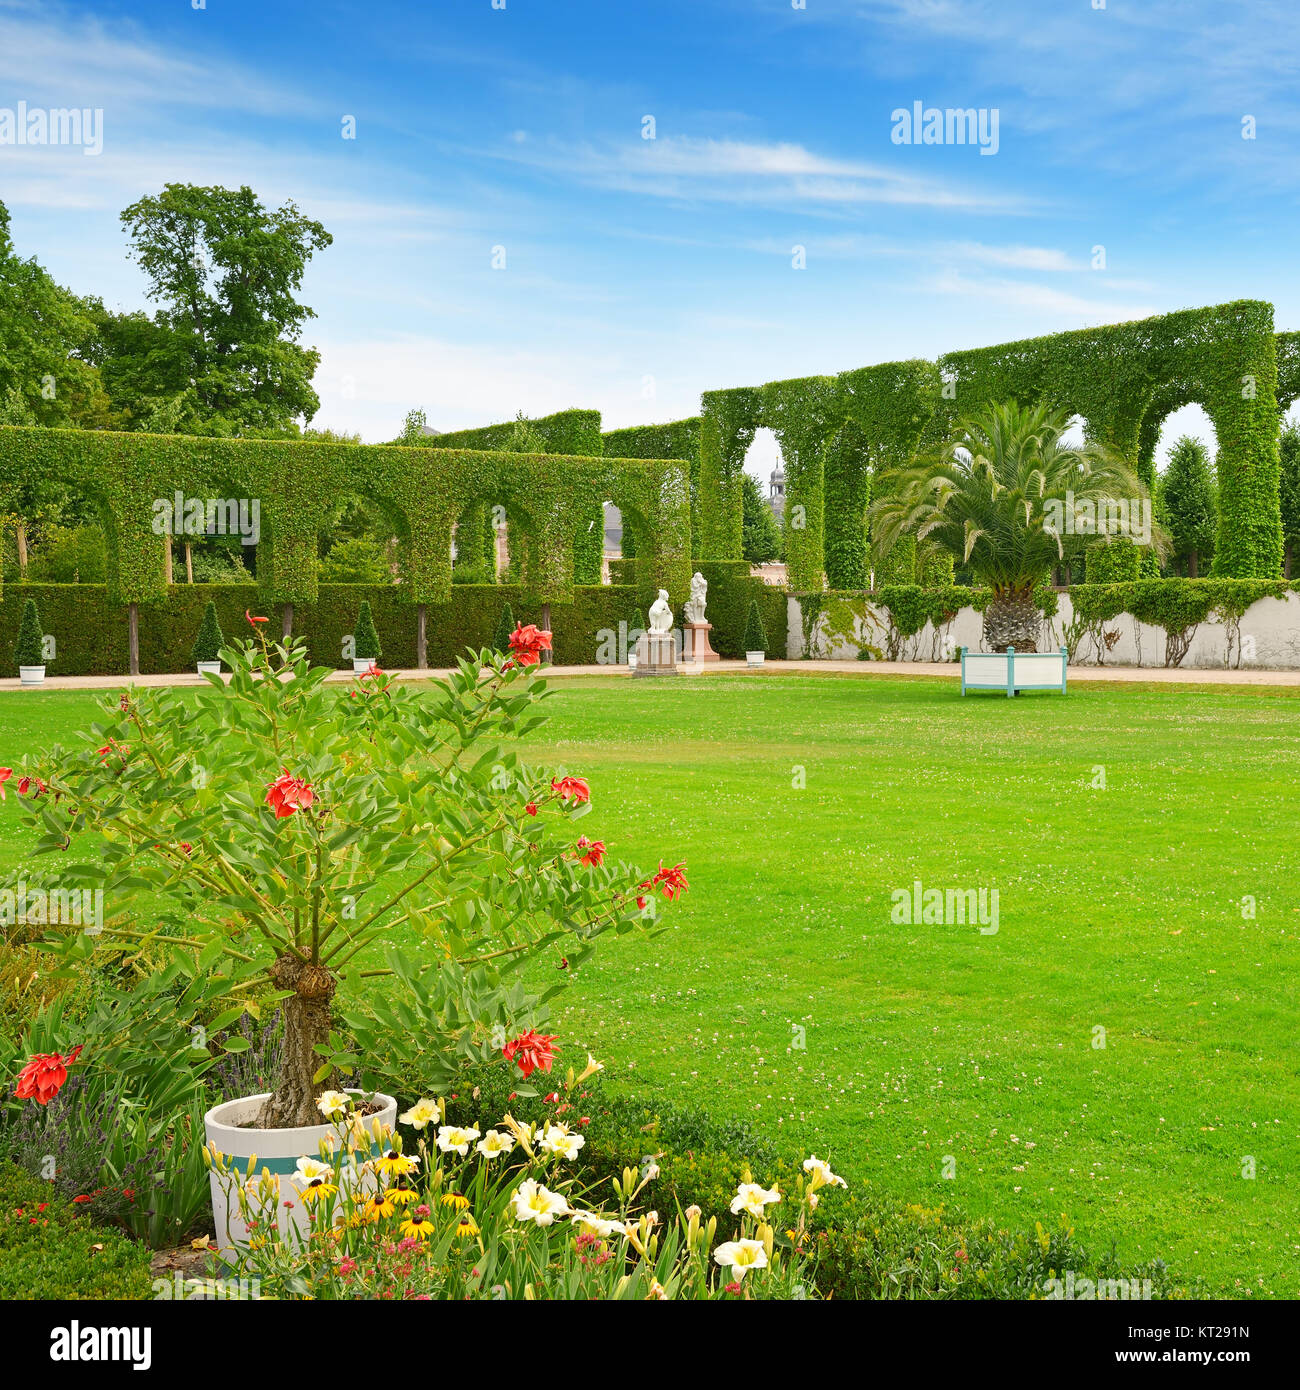 Beautiful glade in the historical city park of Schwetzingen, Germany. - Stock Image